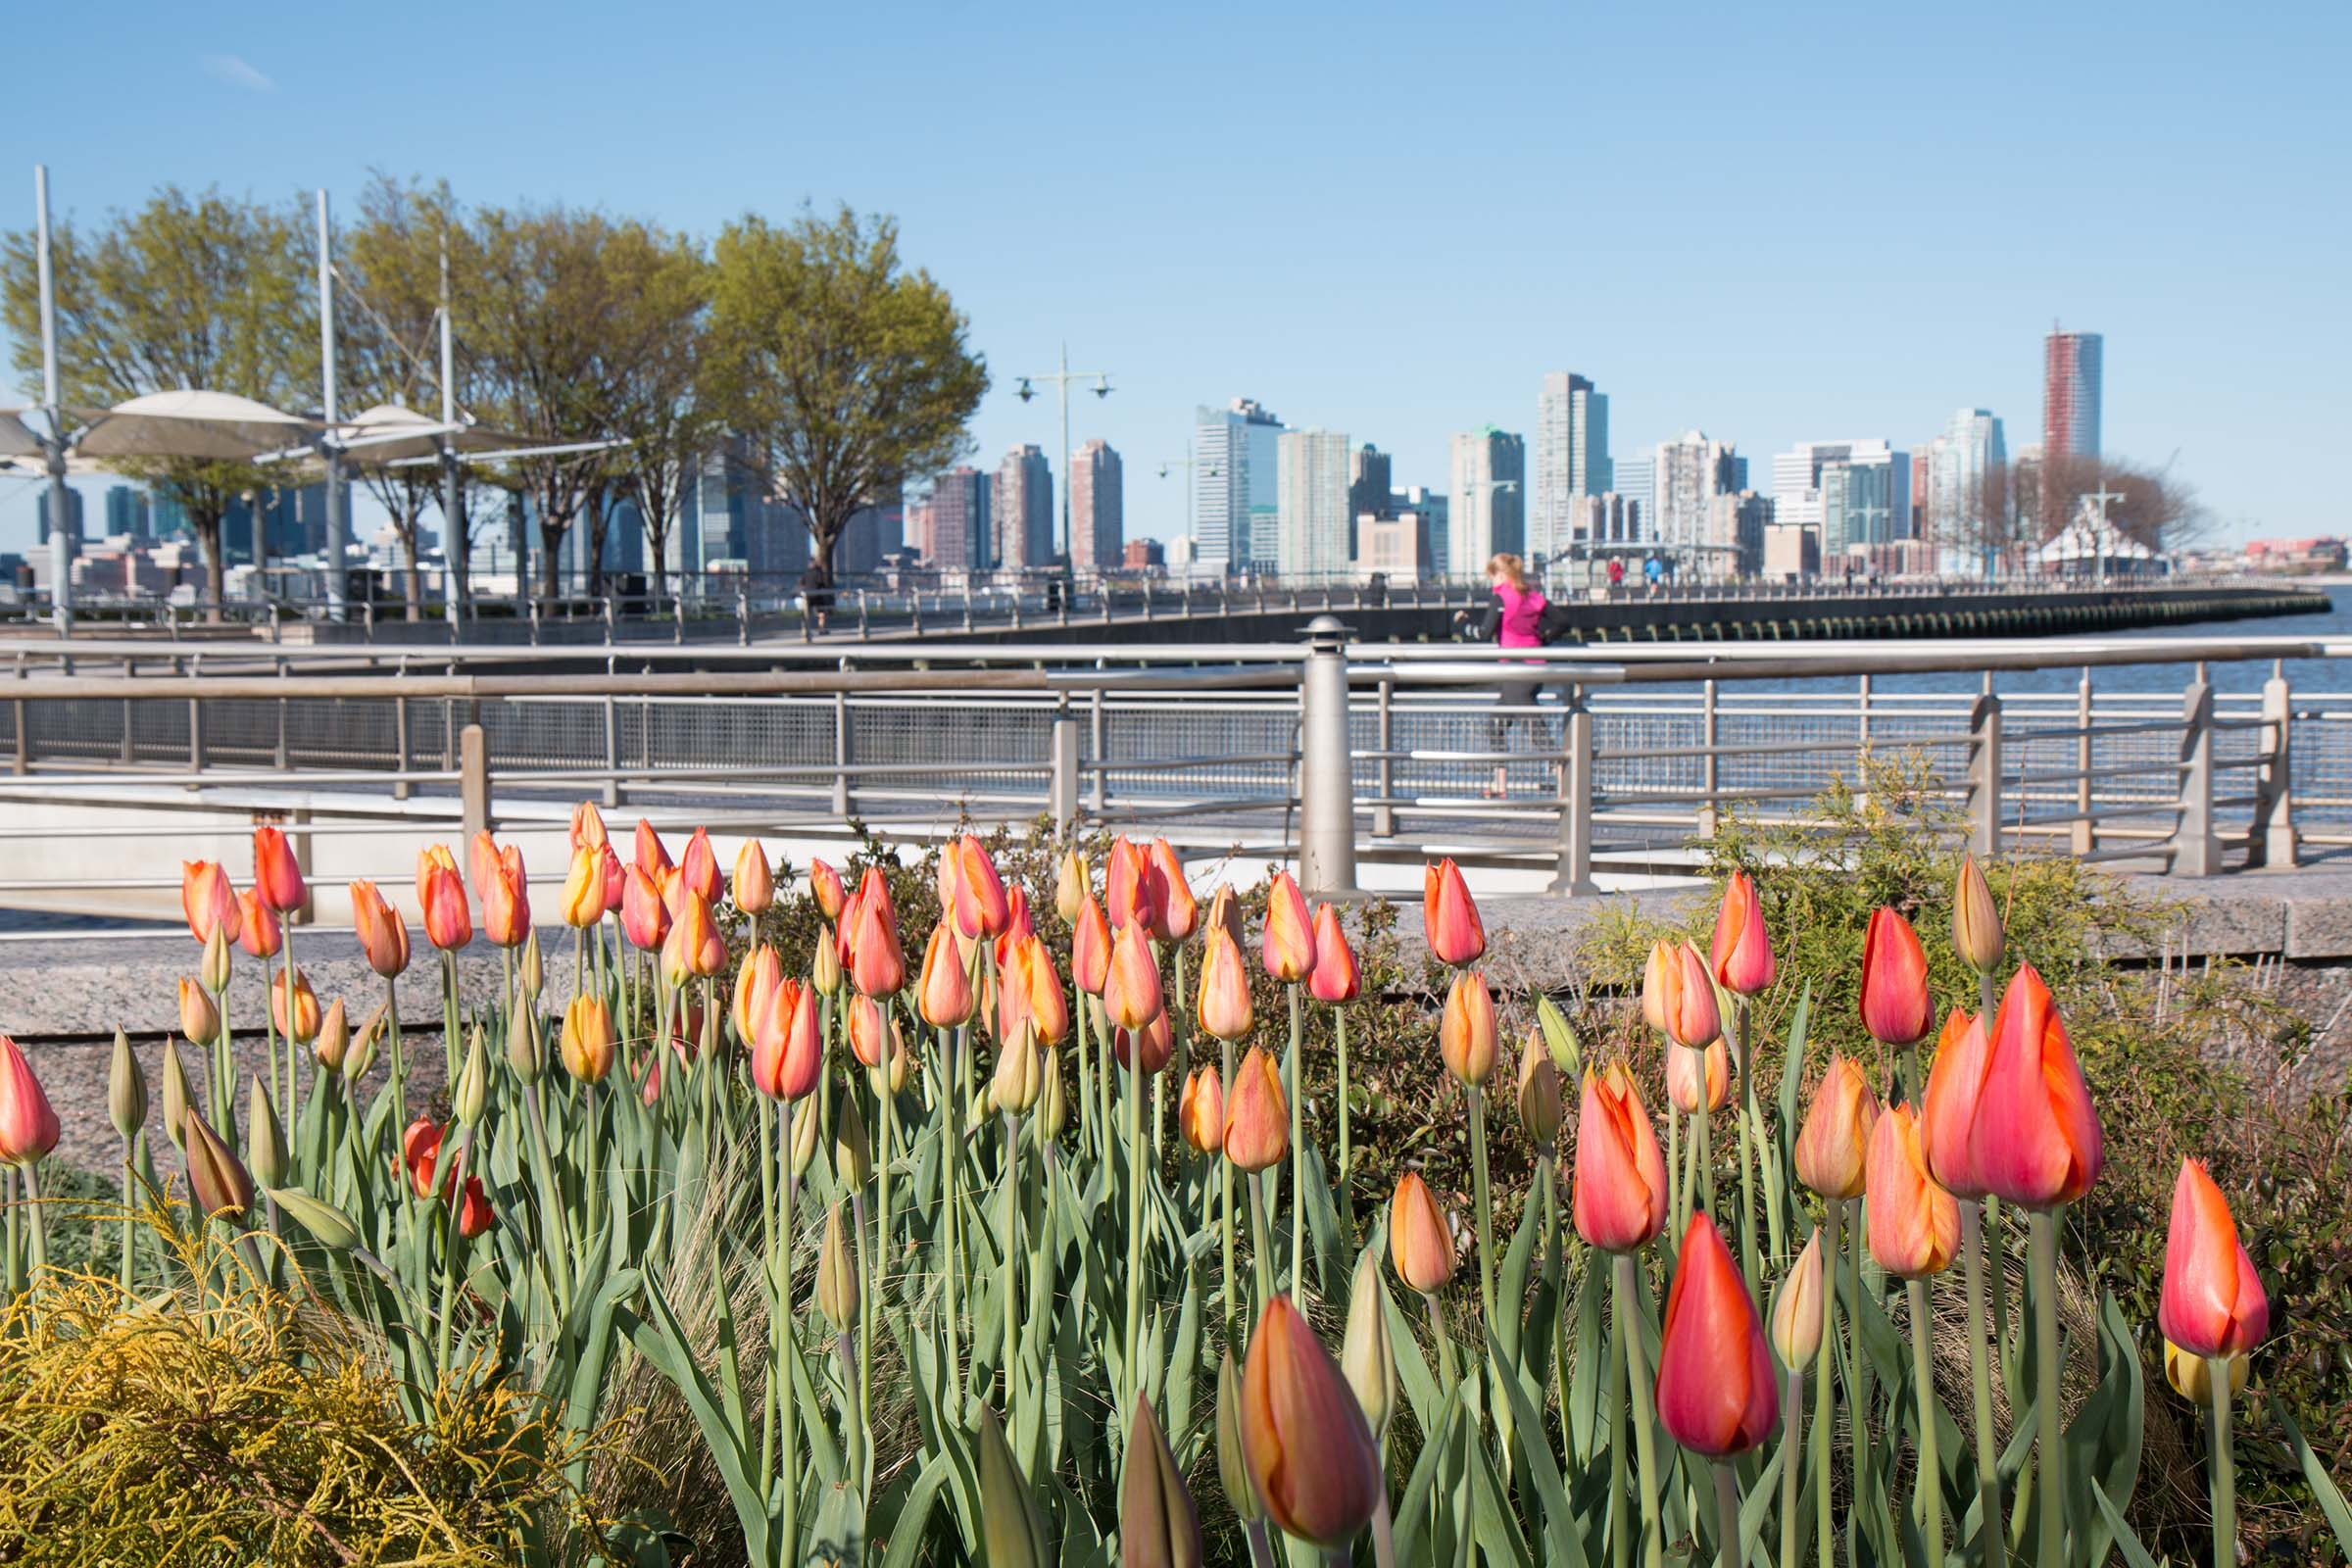 Orange tulips populate the west village gardens in Hudson River Park